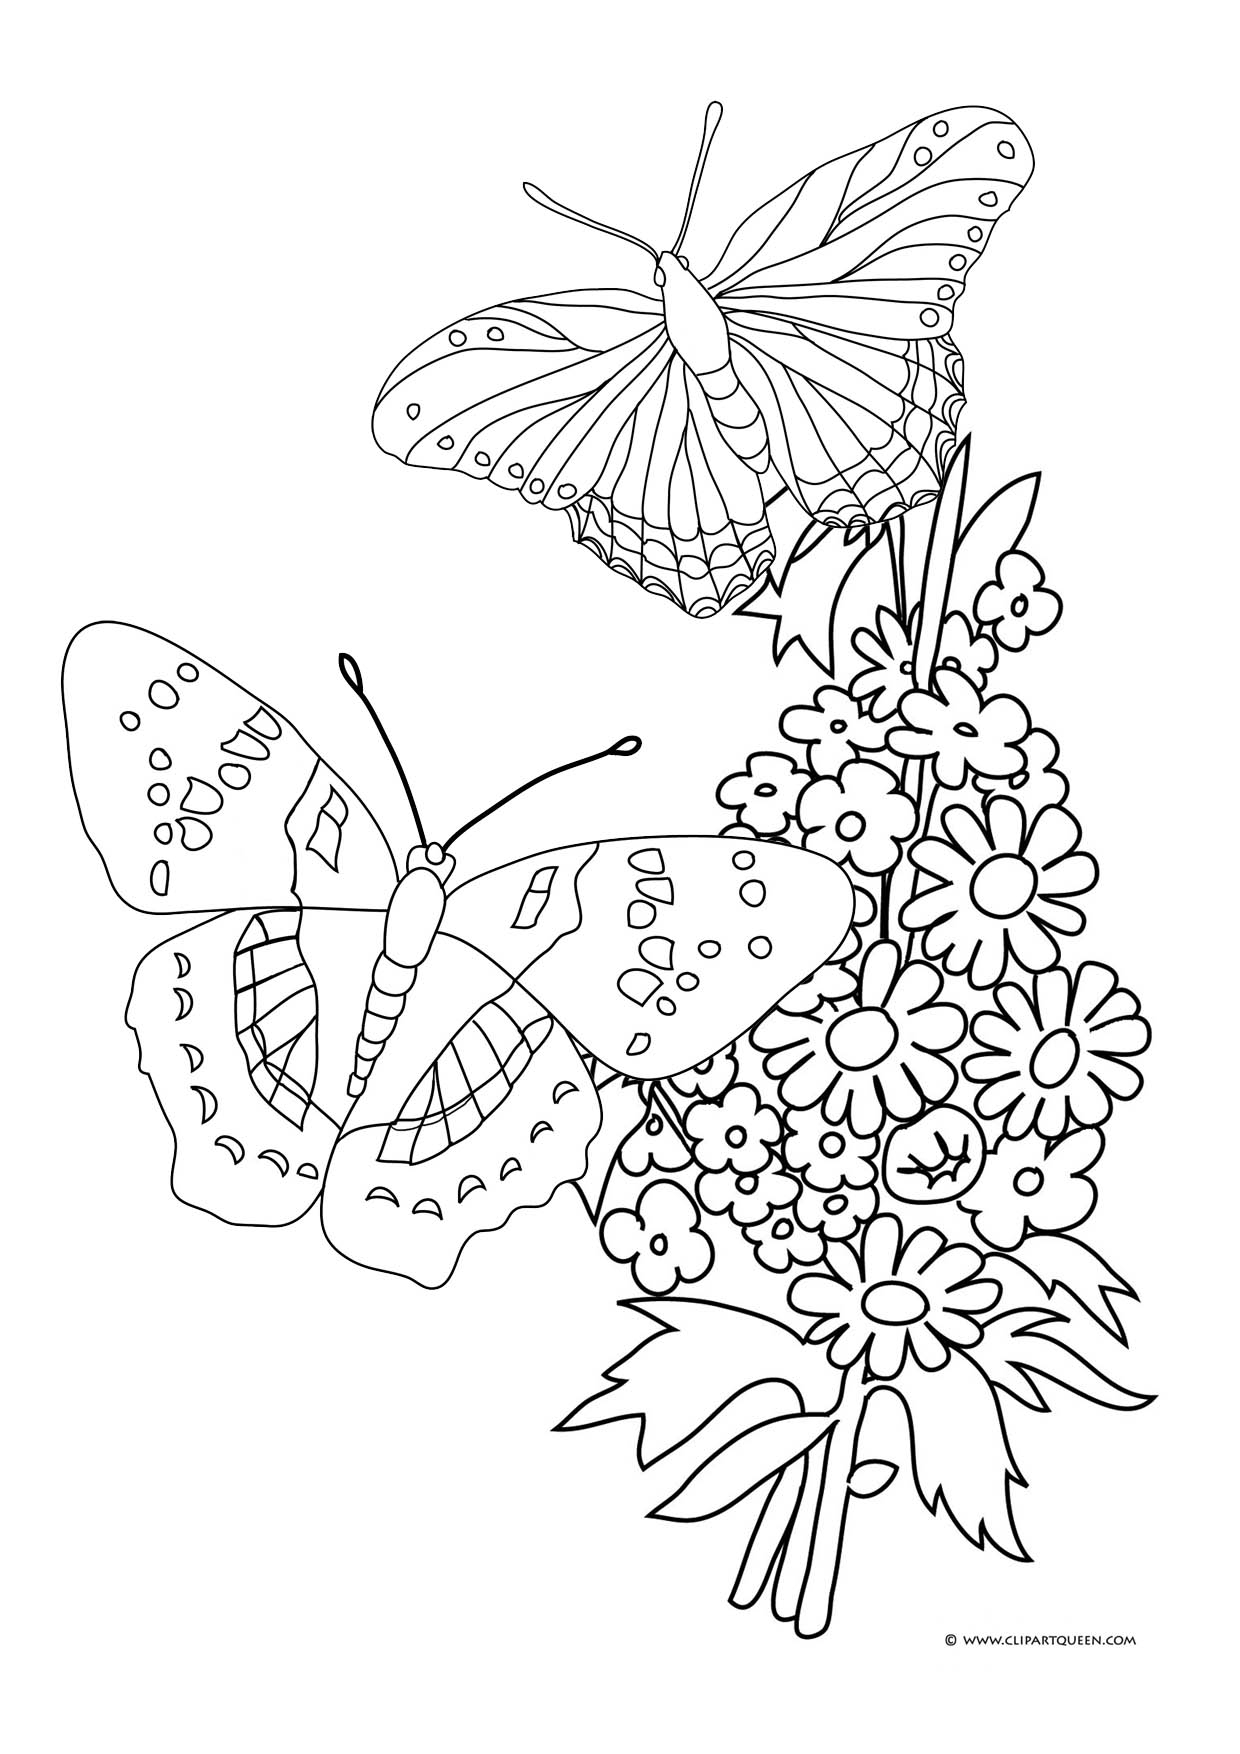 1240x1754 Drawing Butterfly And Flowers Drawn Butterfly Flower Drawing